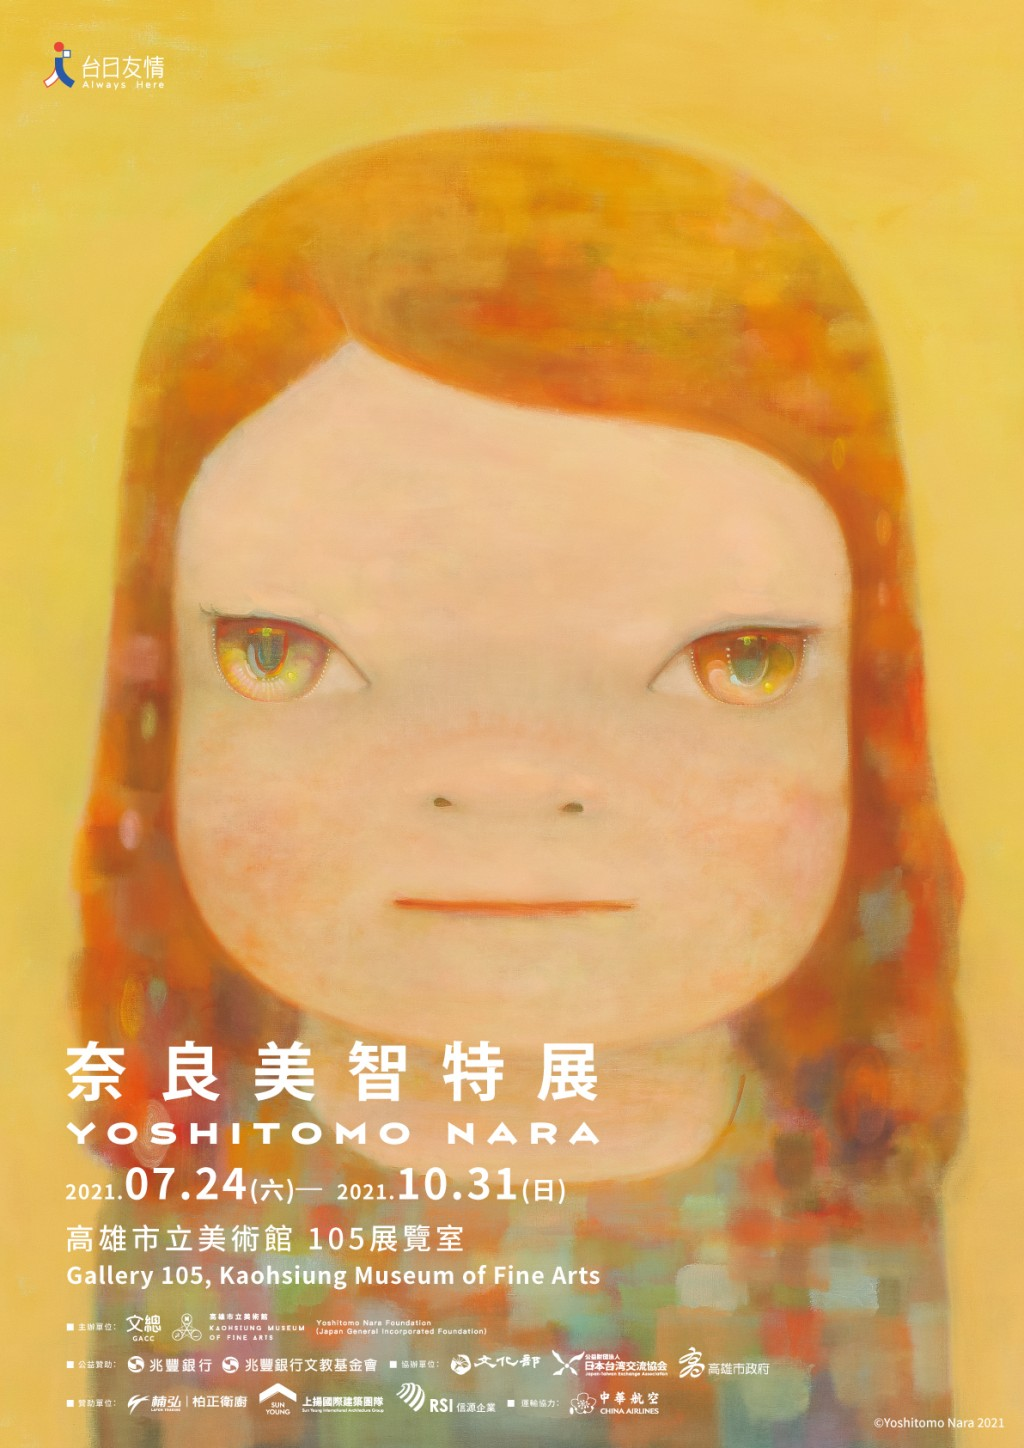 Nara Yoshitomo's exhibition will get underway at Kaohsiung Museum of Fine Arts on July 24. (Kaohsiung Museum of Fine Arts photo)